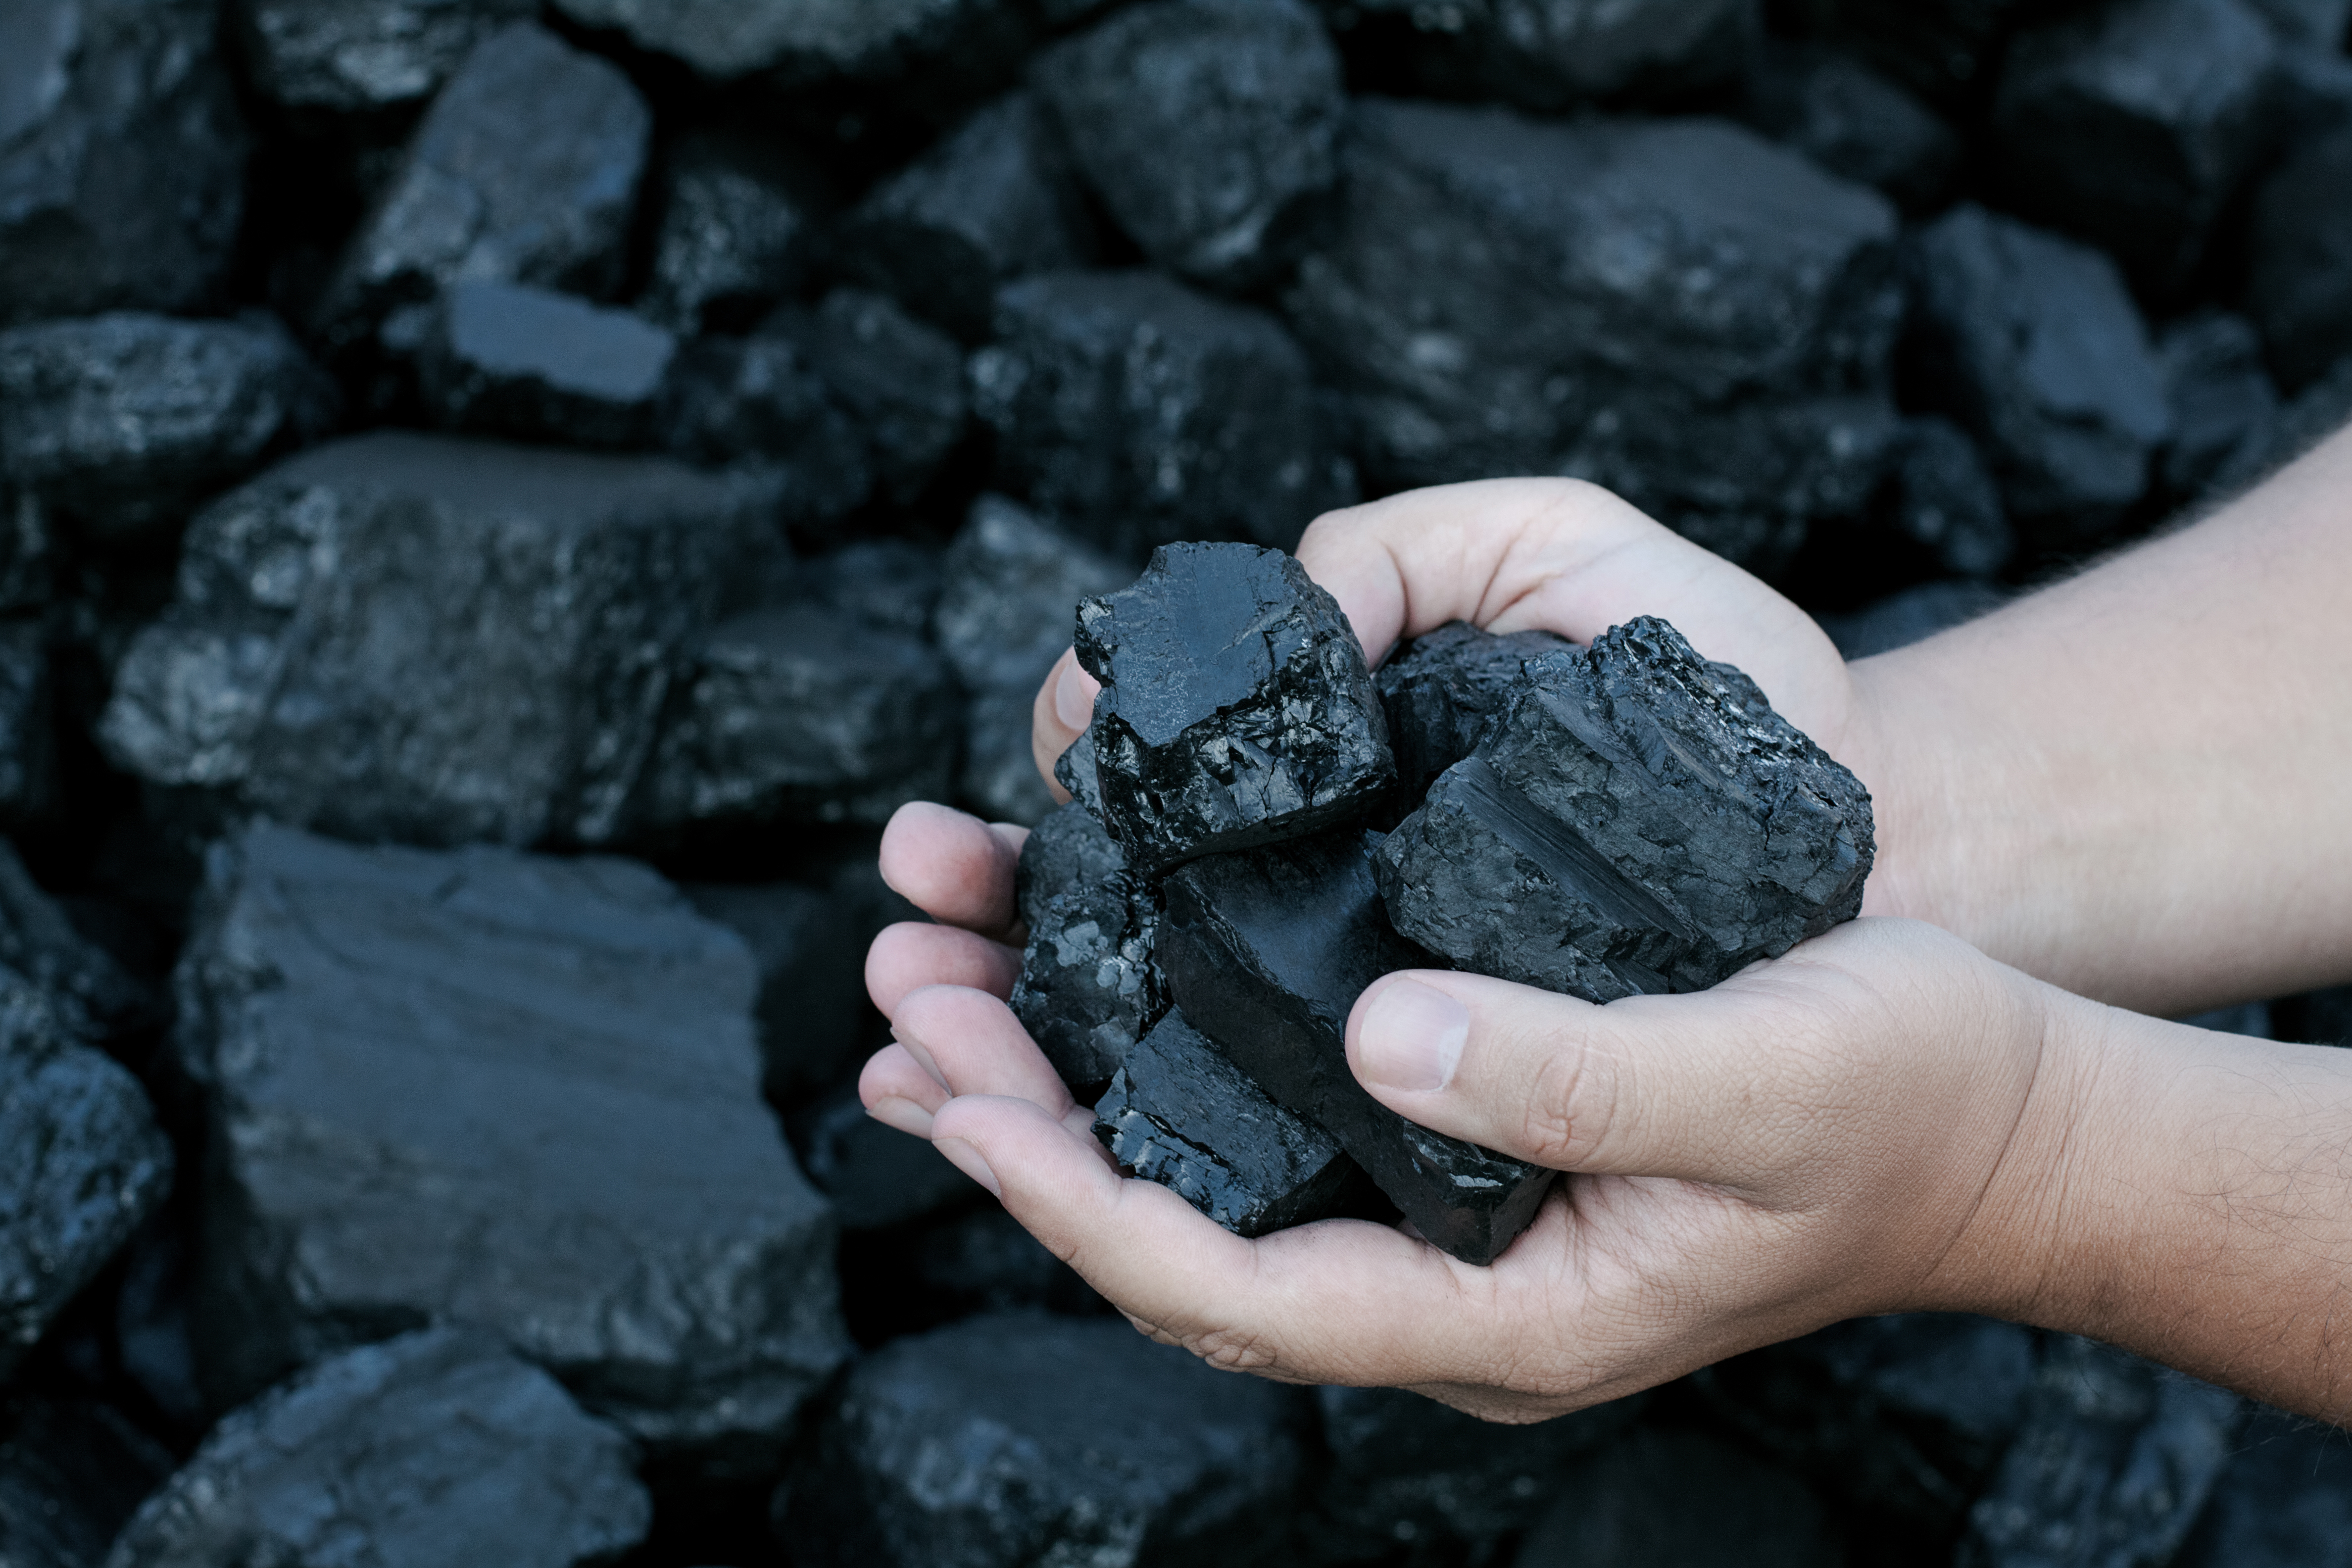 Lidl stores across the city will be handing out coal